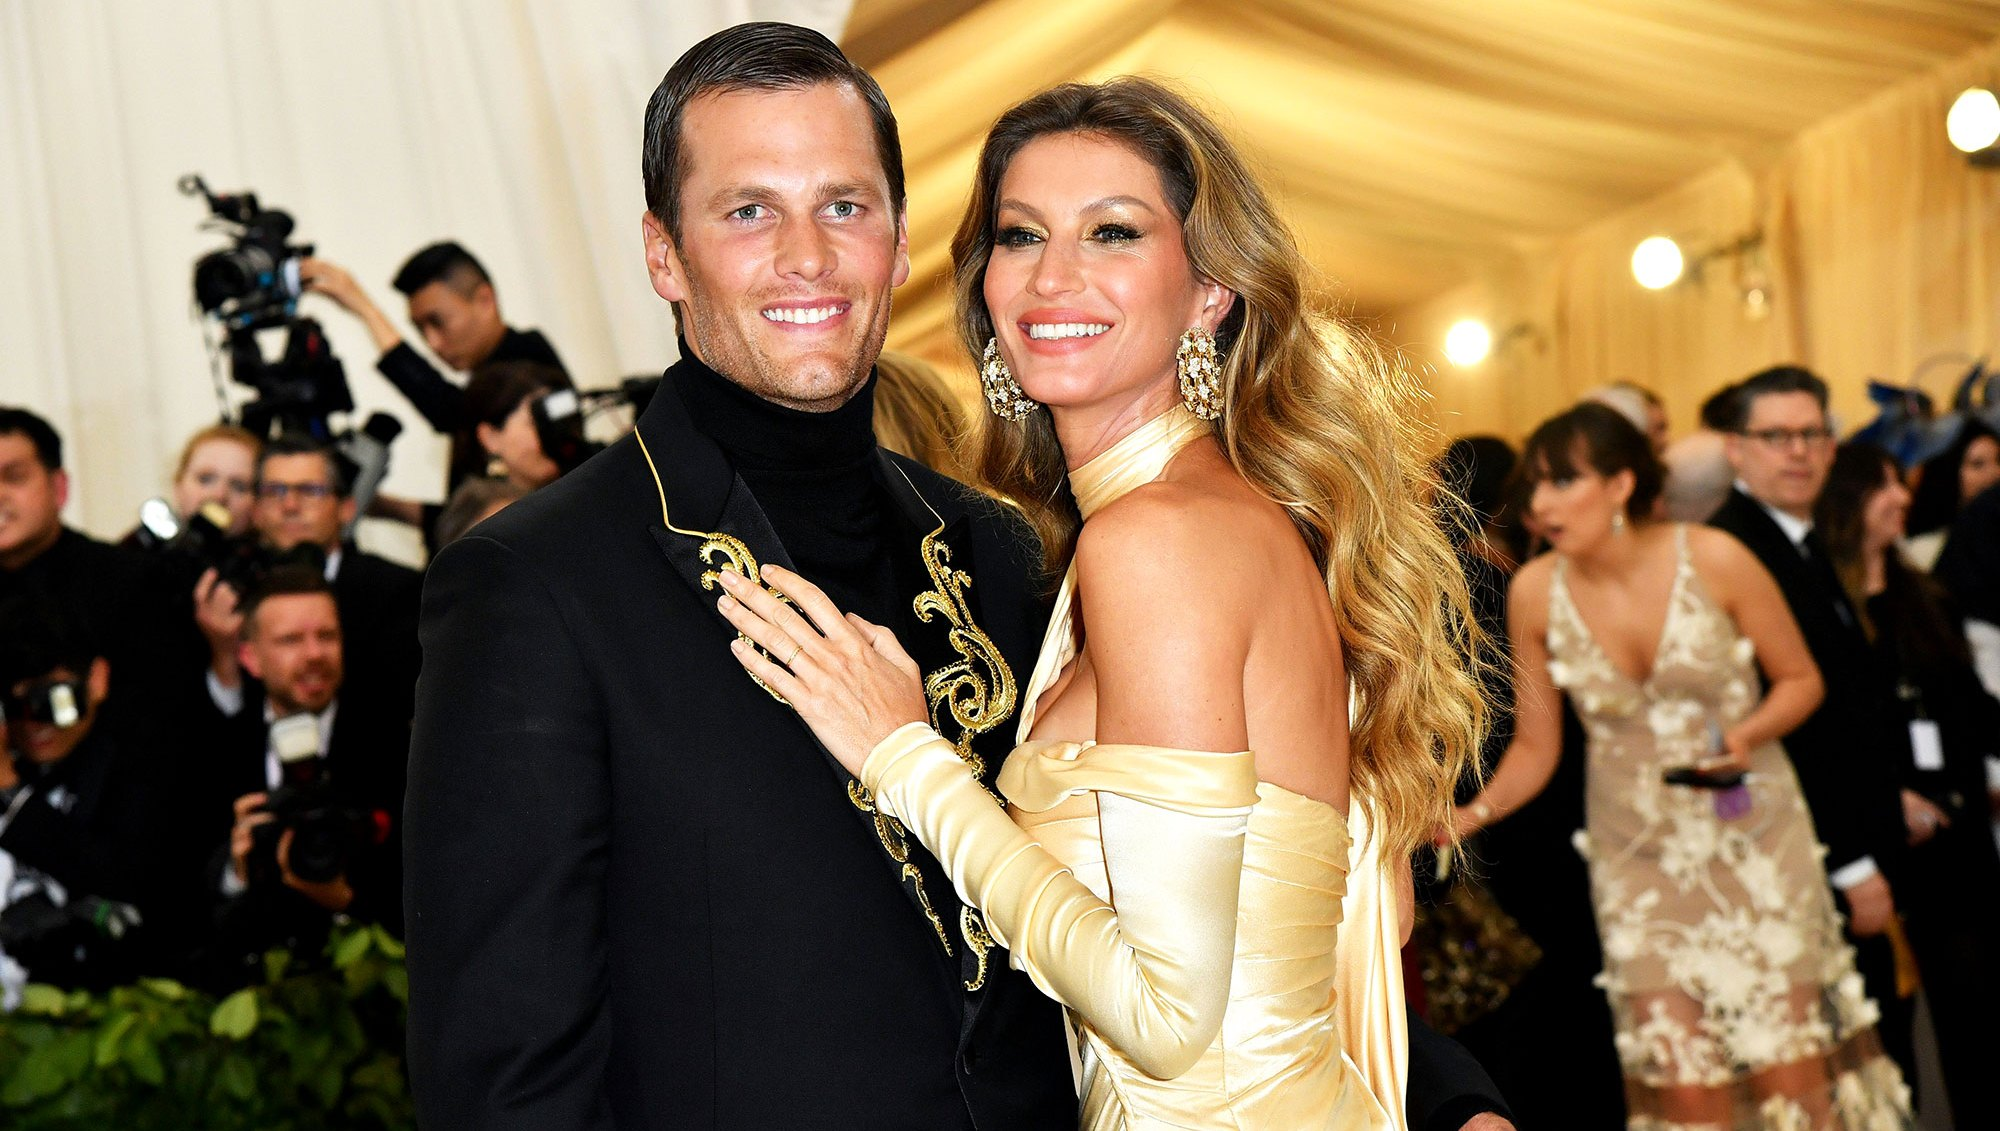 Gisele Bundchen Congratulates Tom Brady as Patriots Head to Super Bowl: 'Love You Baby'